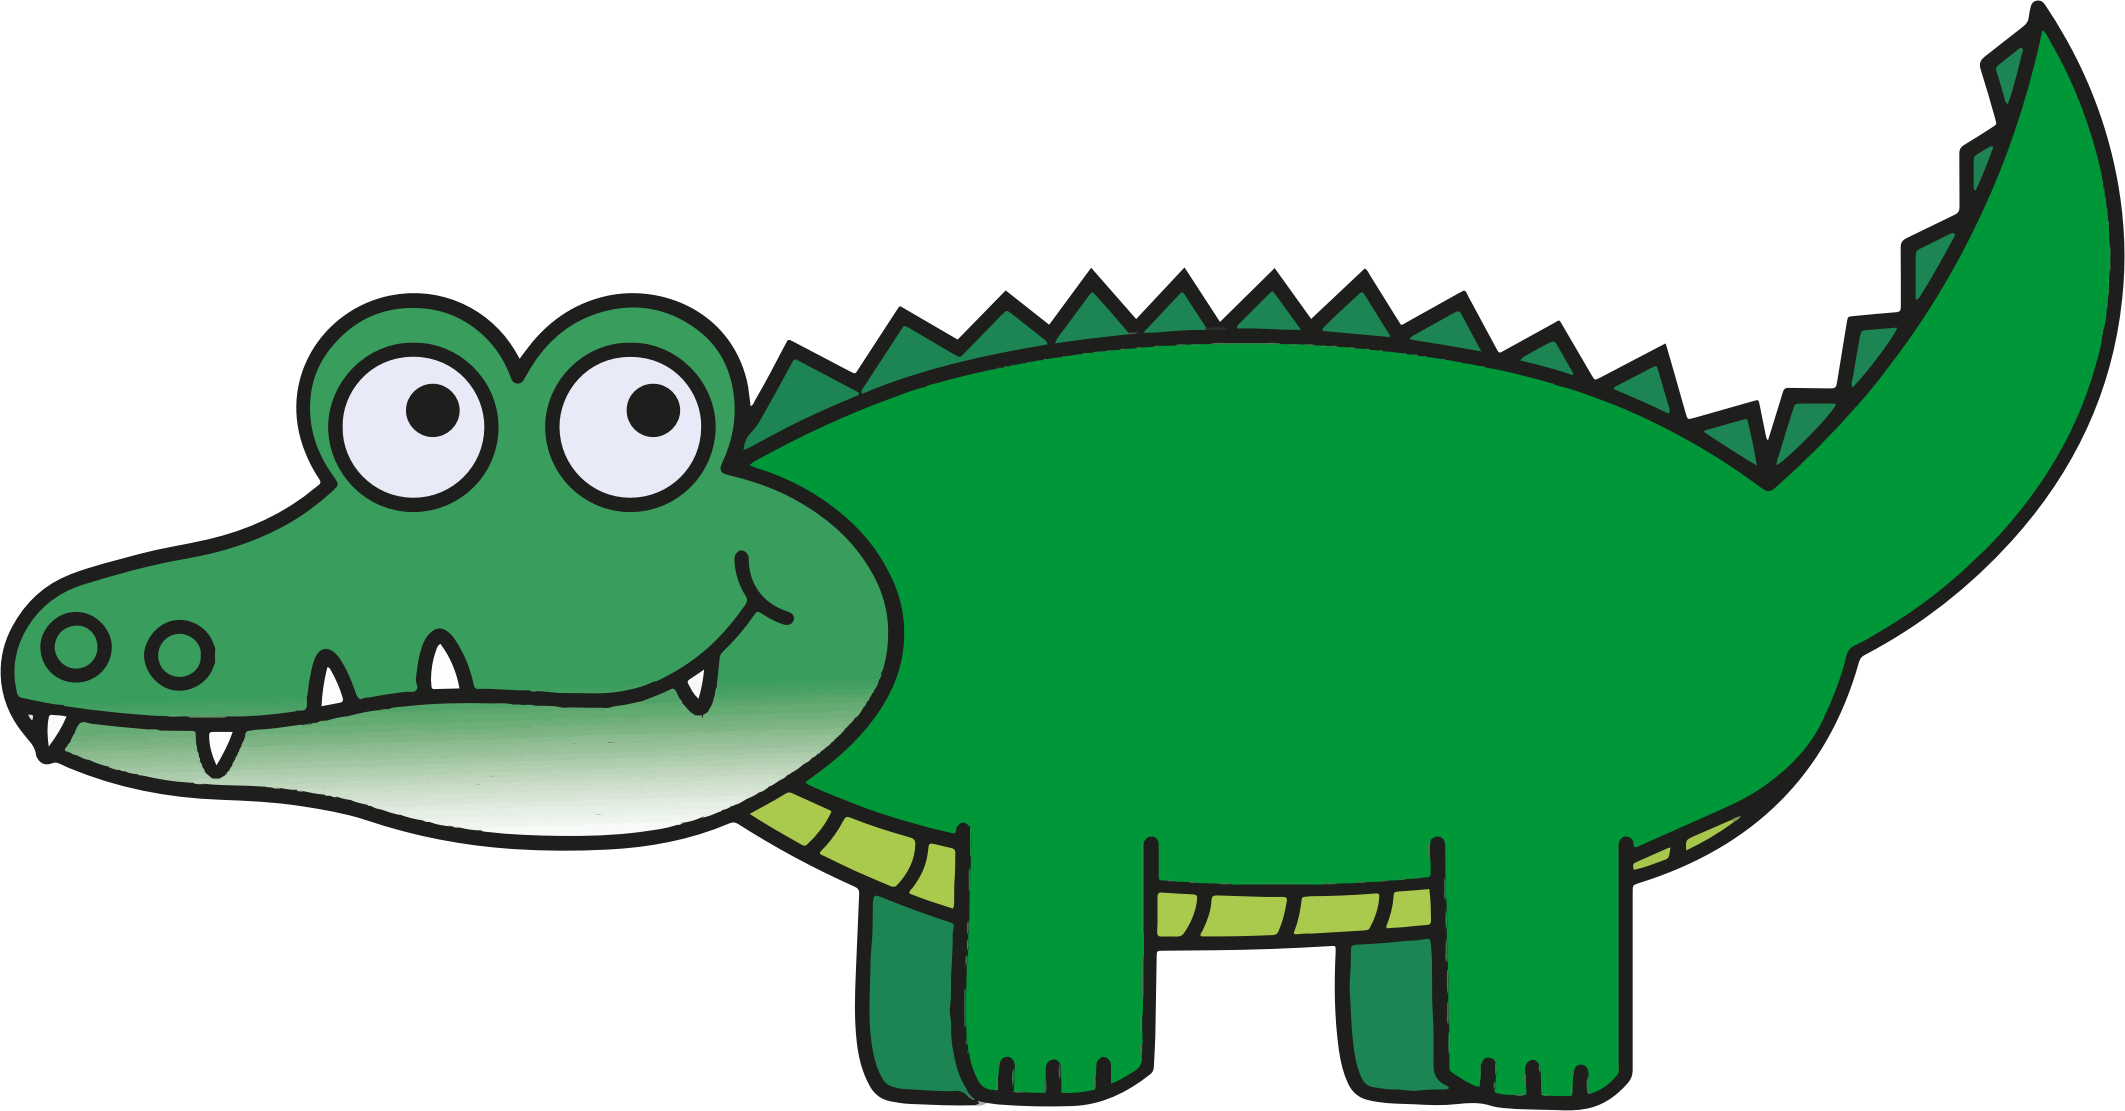 Clipart crocodile with a basketball in its mouth svg freeuse download Alligator Clipart at GetDrawings.com | Free for personal use ... svg freeuse download